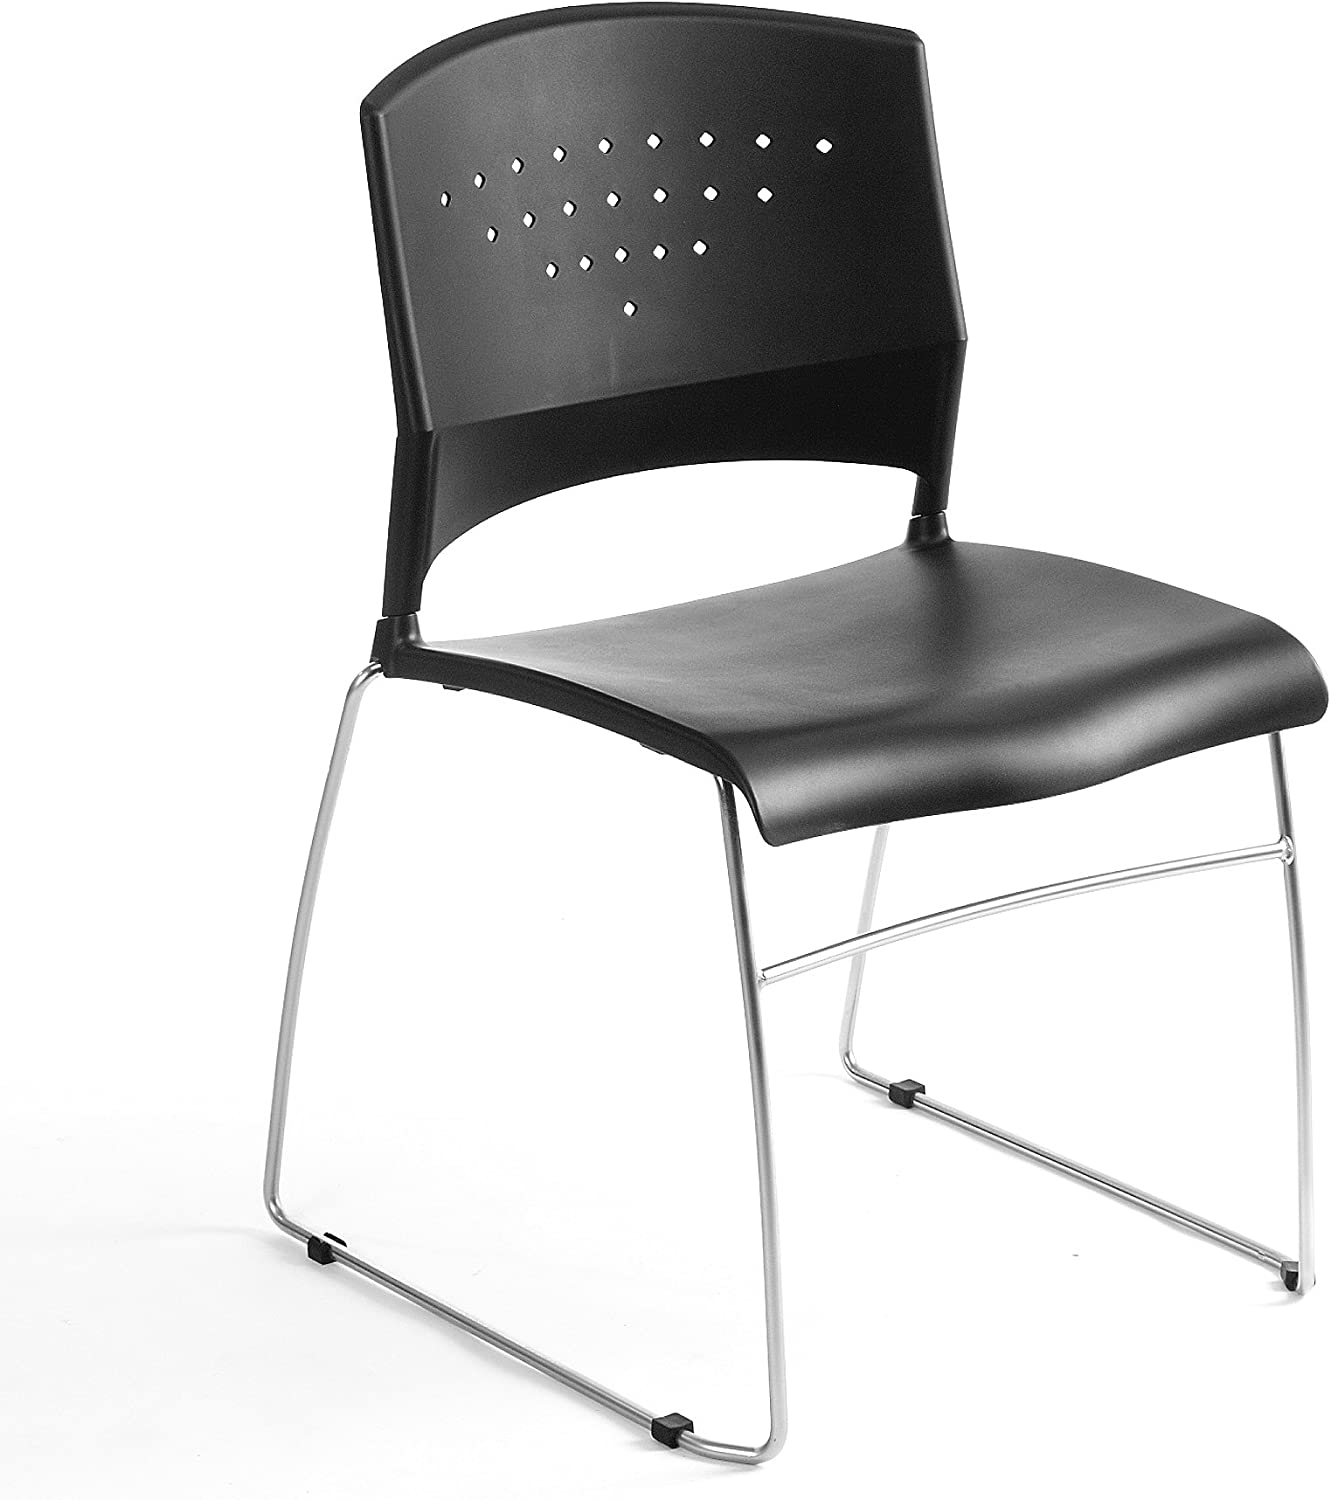 B001EE75VI Boss Office Products Chrome Frame Stack Chair 2 Pack in Black 71g2B-MRlG6L